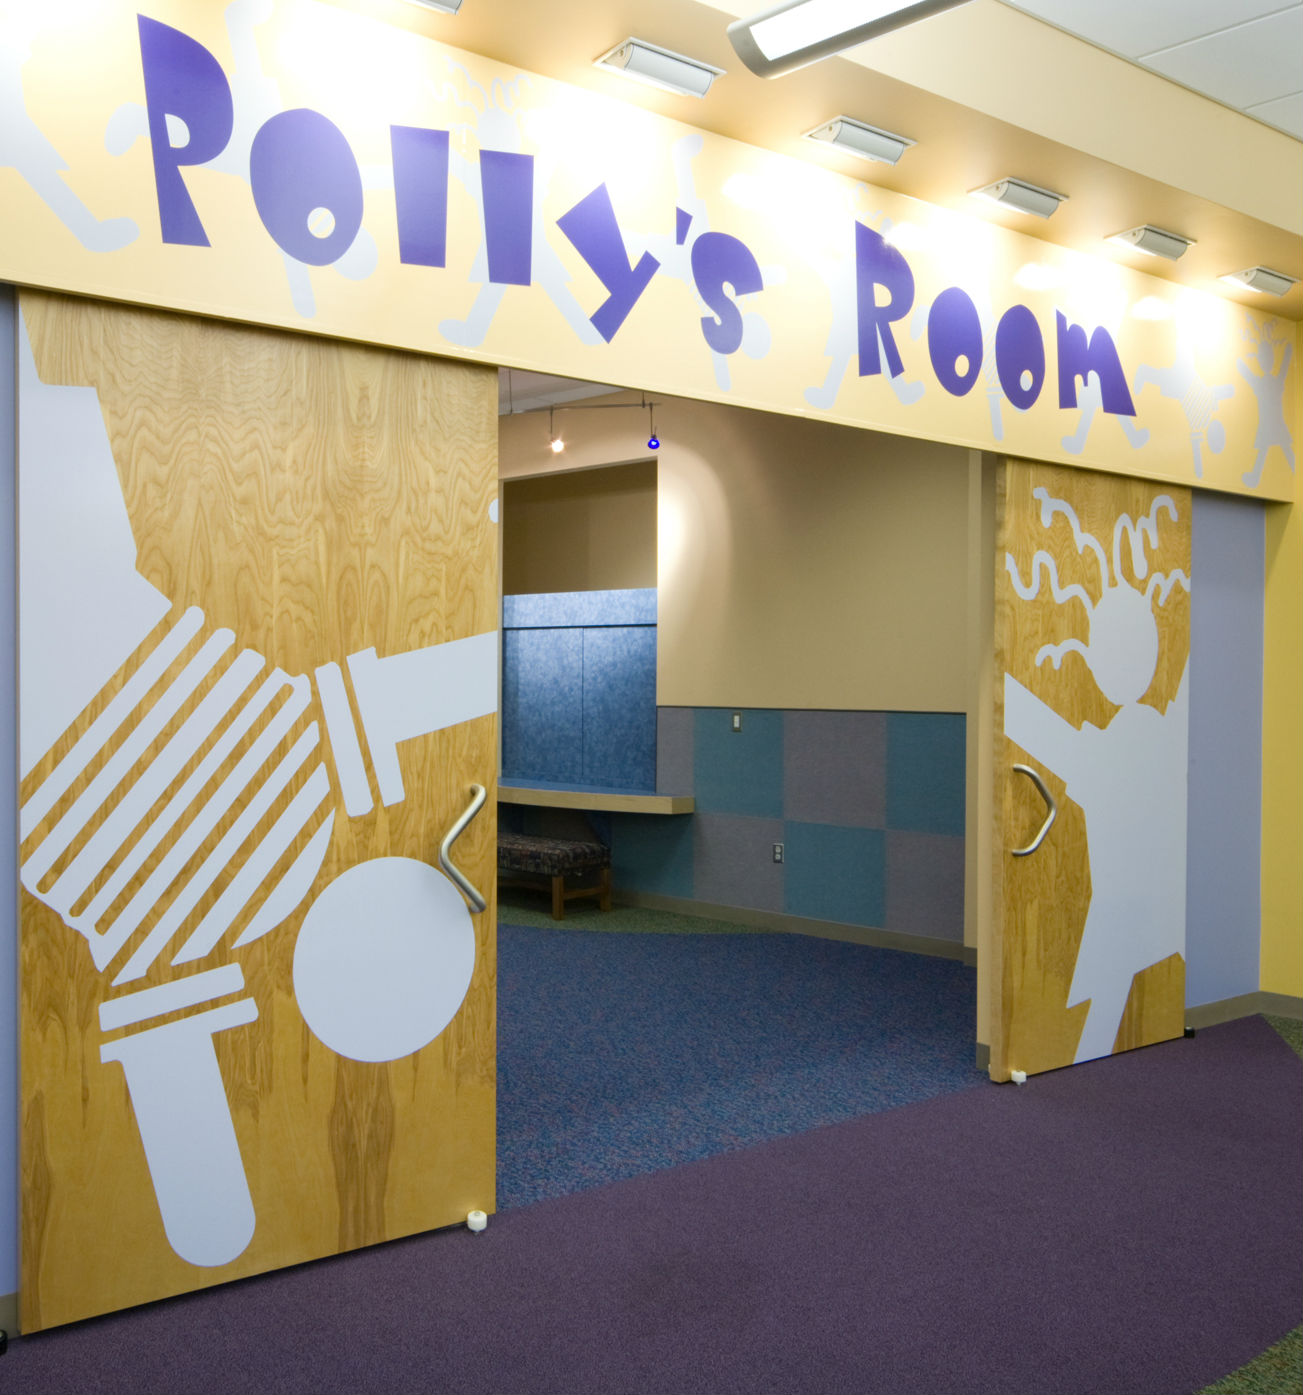 polly brinkley, story time room, library, north richland hills, texas,